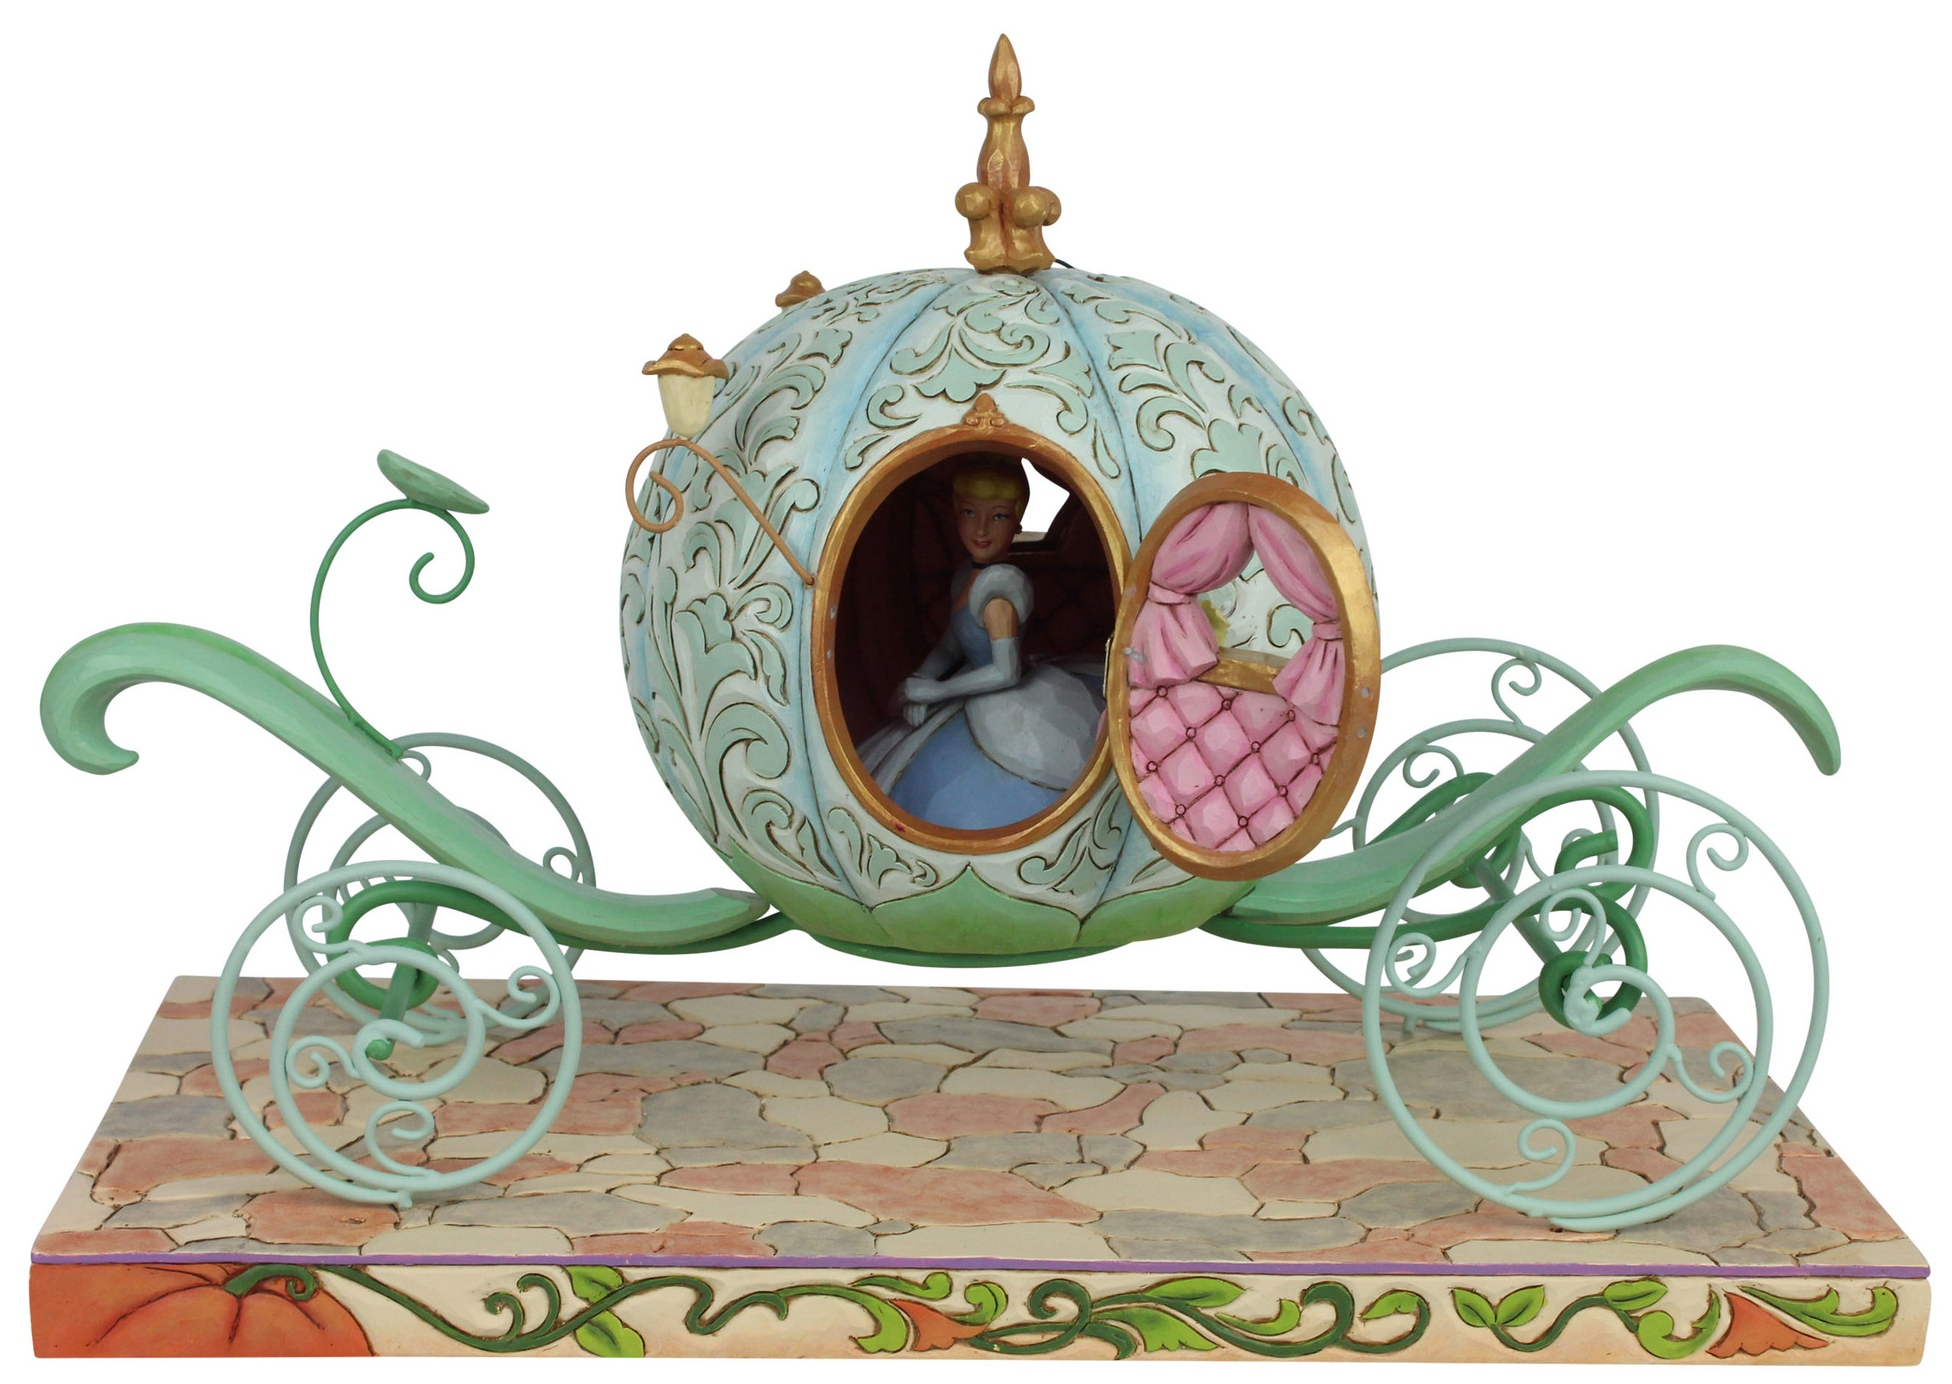 Disney Traditions by Jim Shore 6007055 Pumpkin Coach with Cinderella Figurine